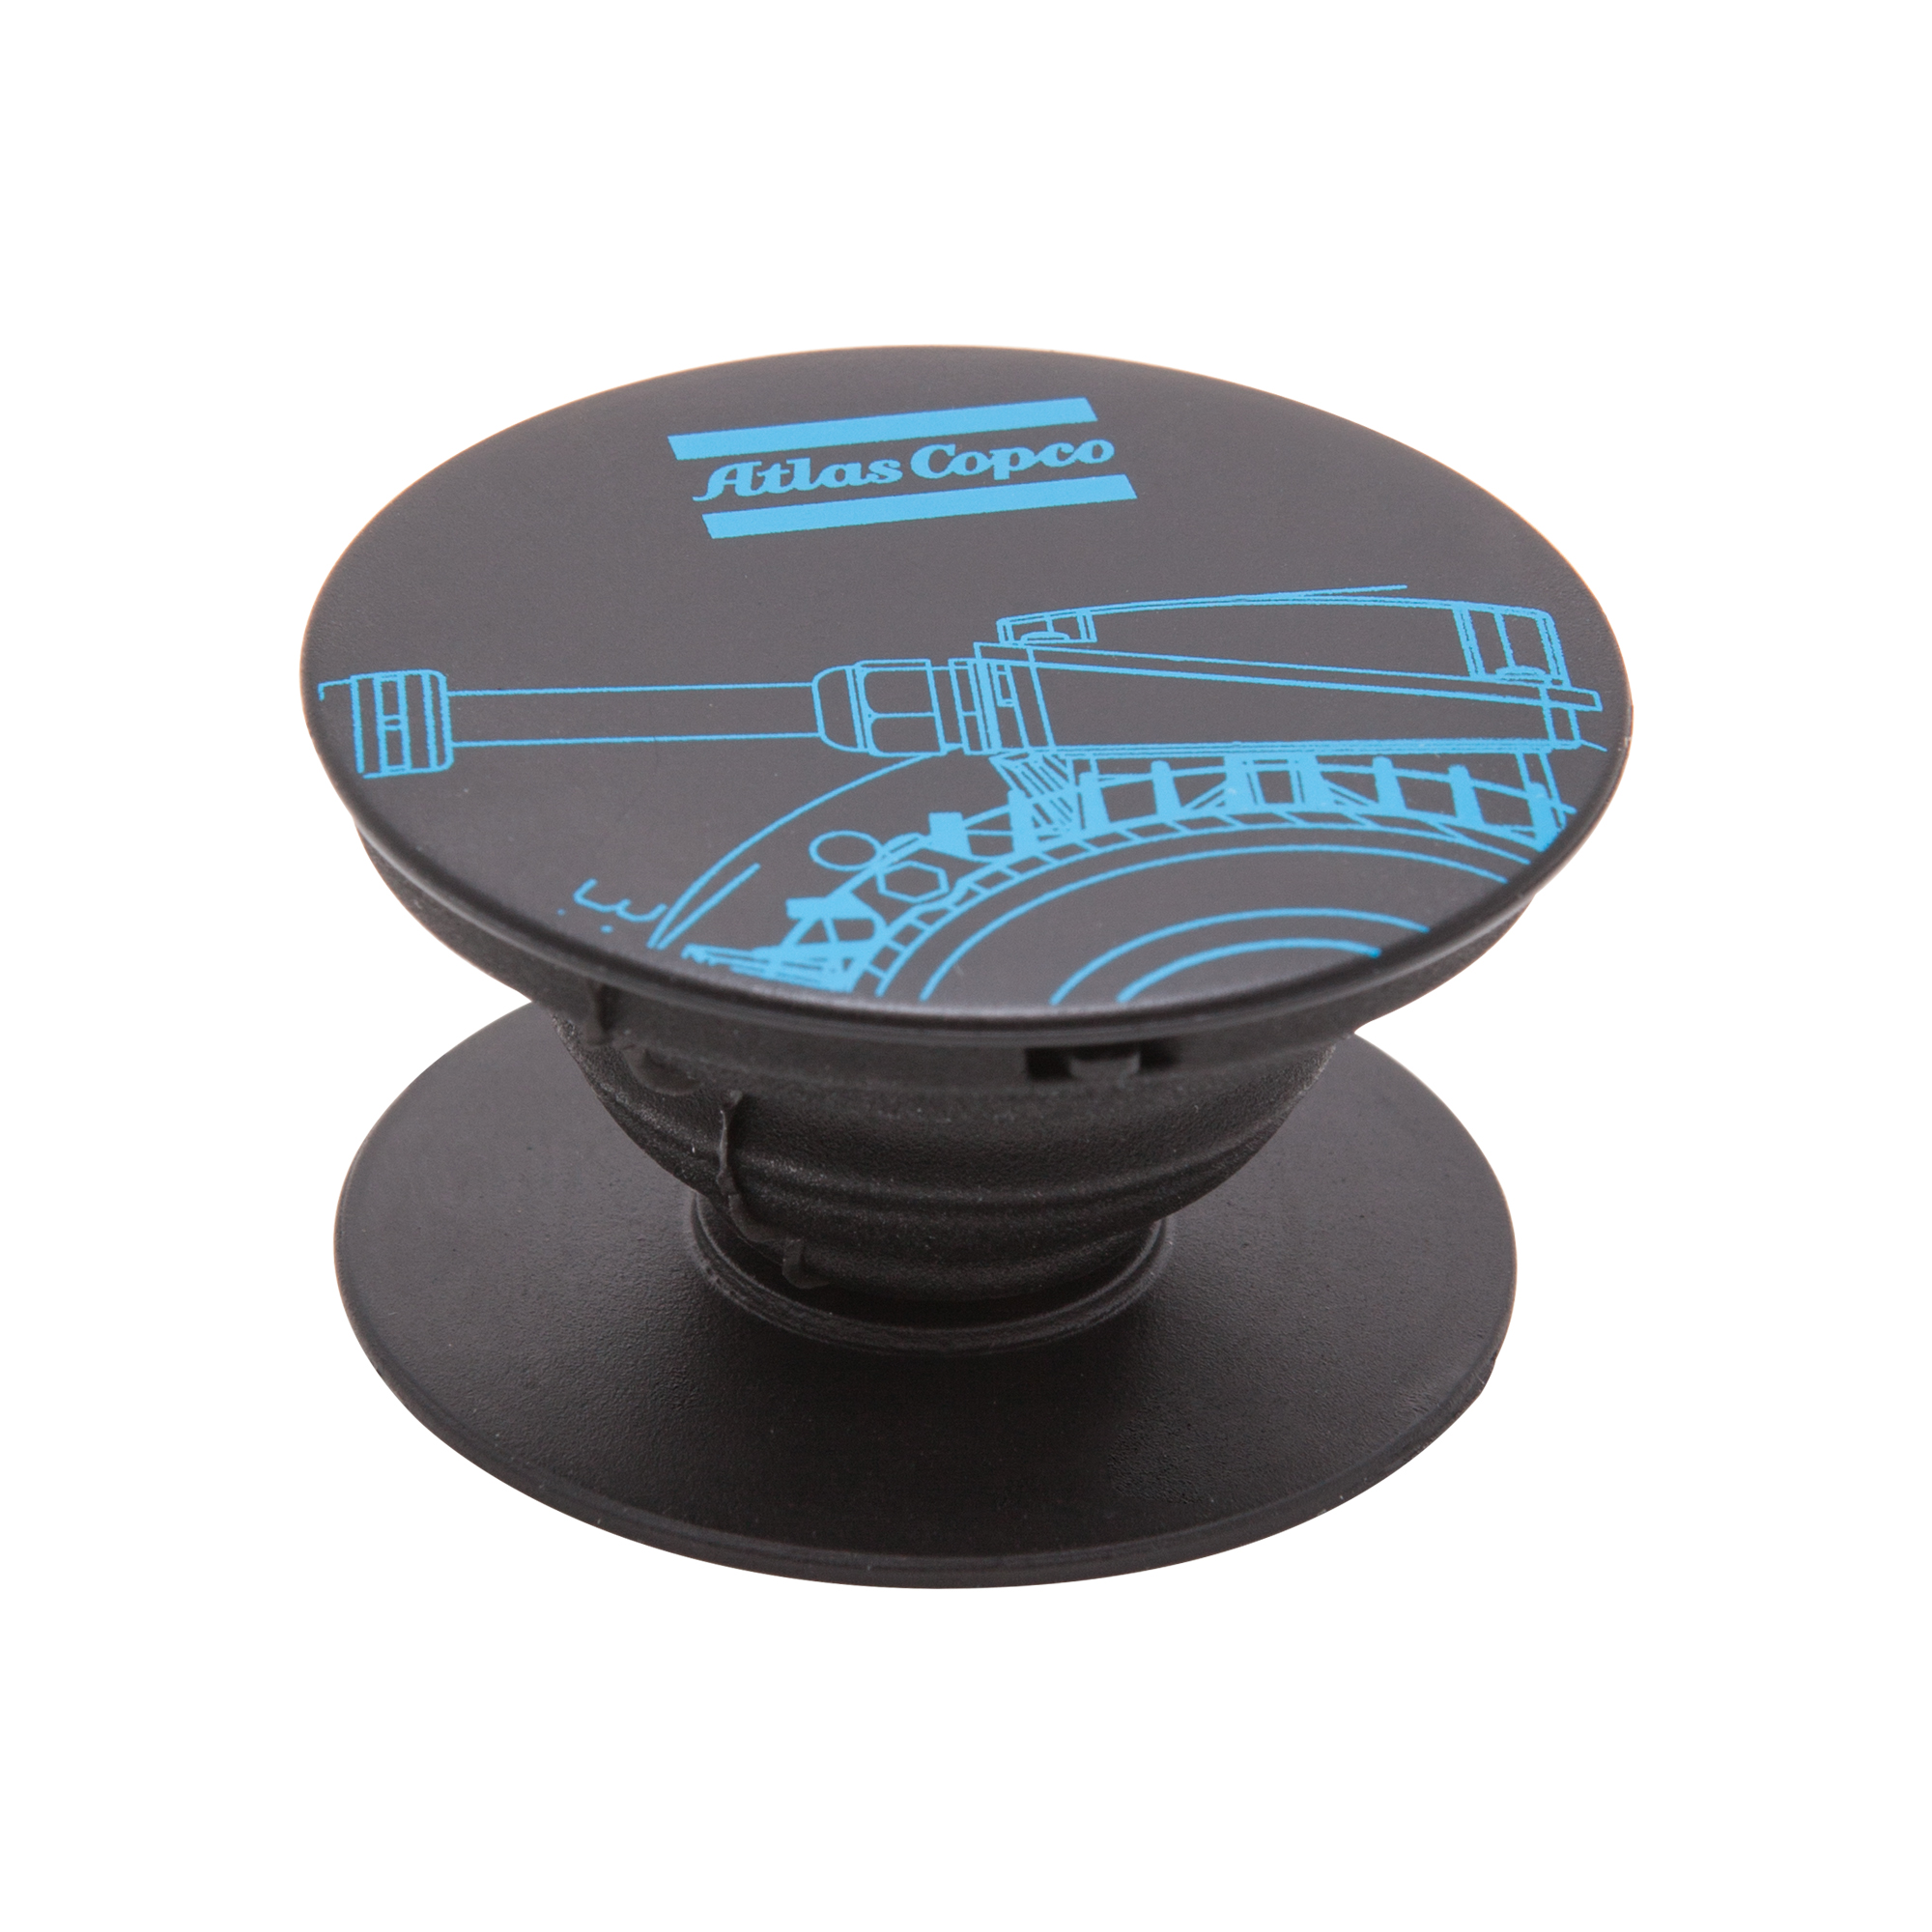 A collapsible grip and stand for your phone. Use popsocket when you're enjoying media, gaming, taking your best selfies or when you just want a good grip on your phone.